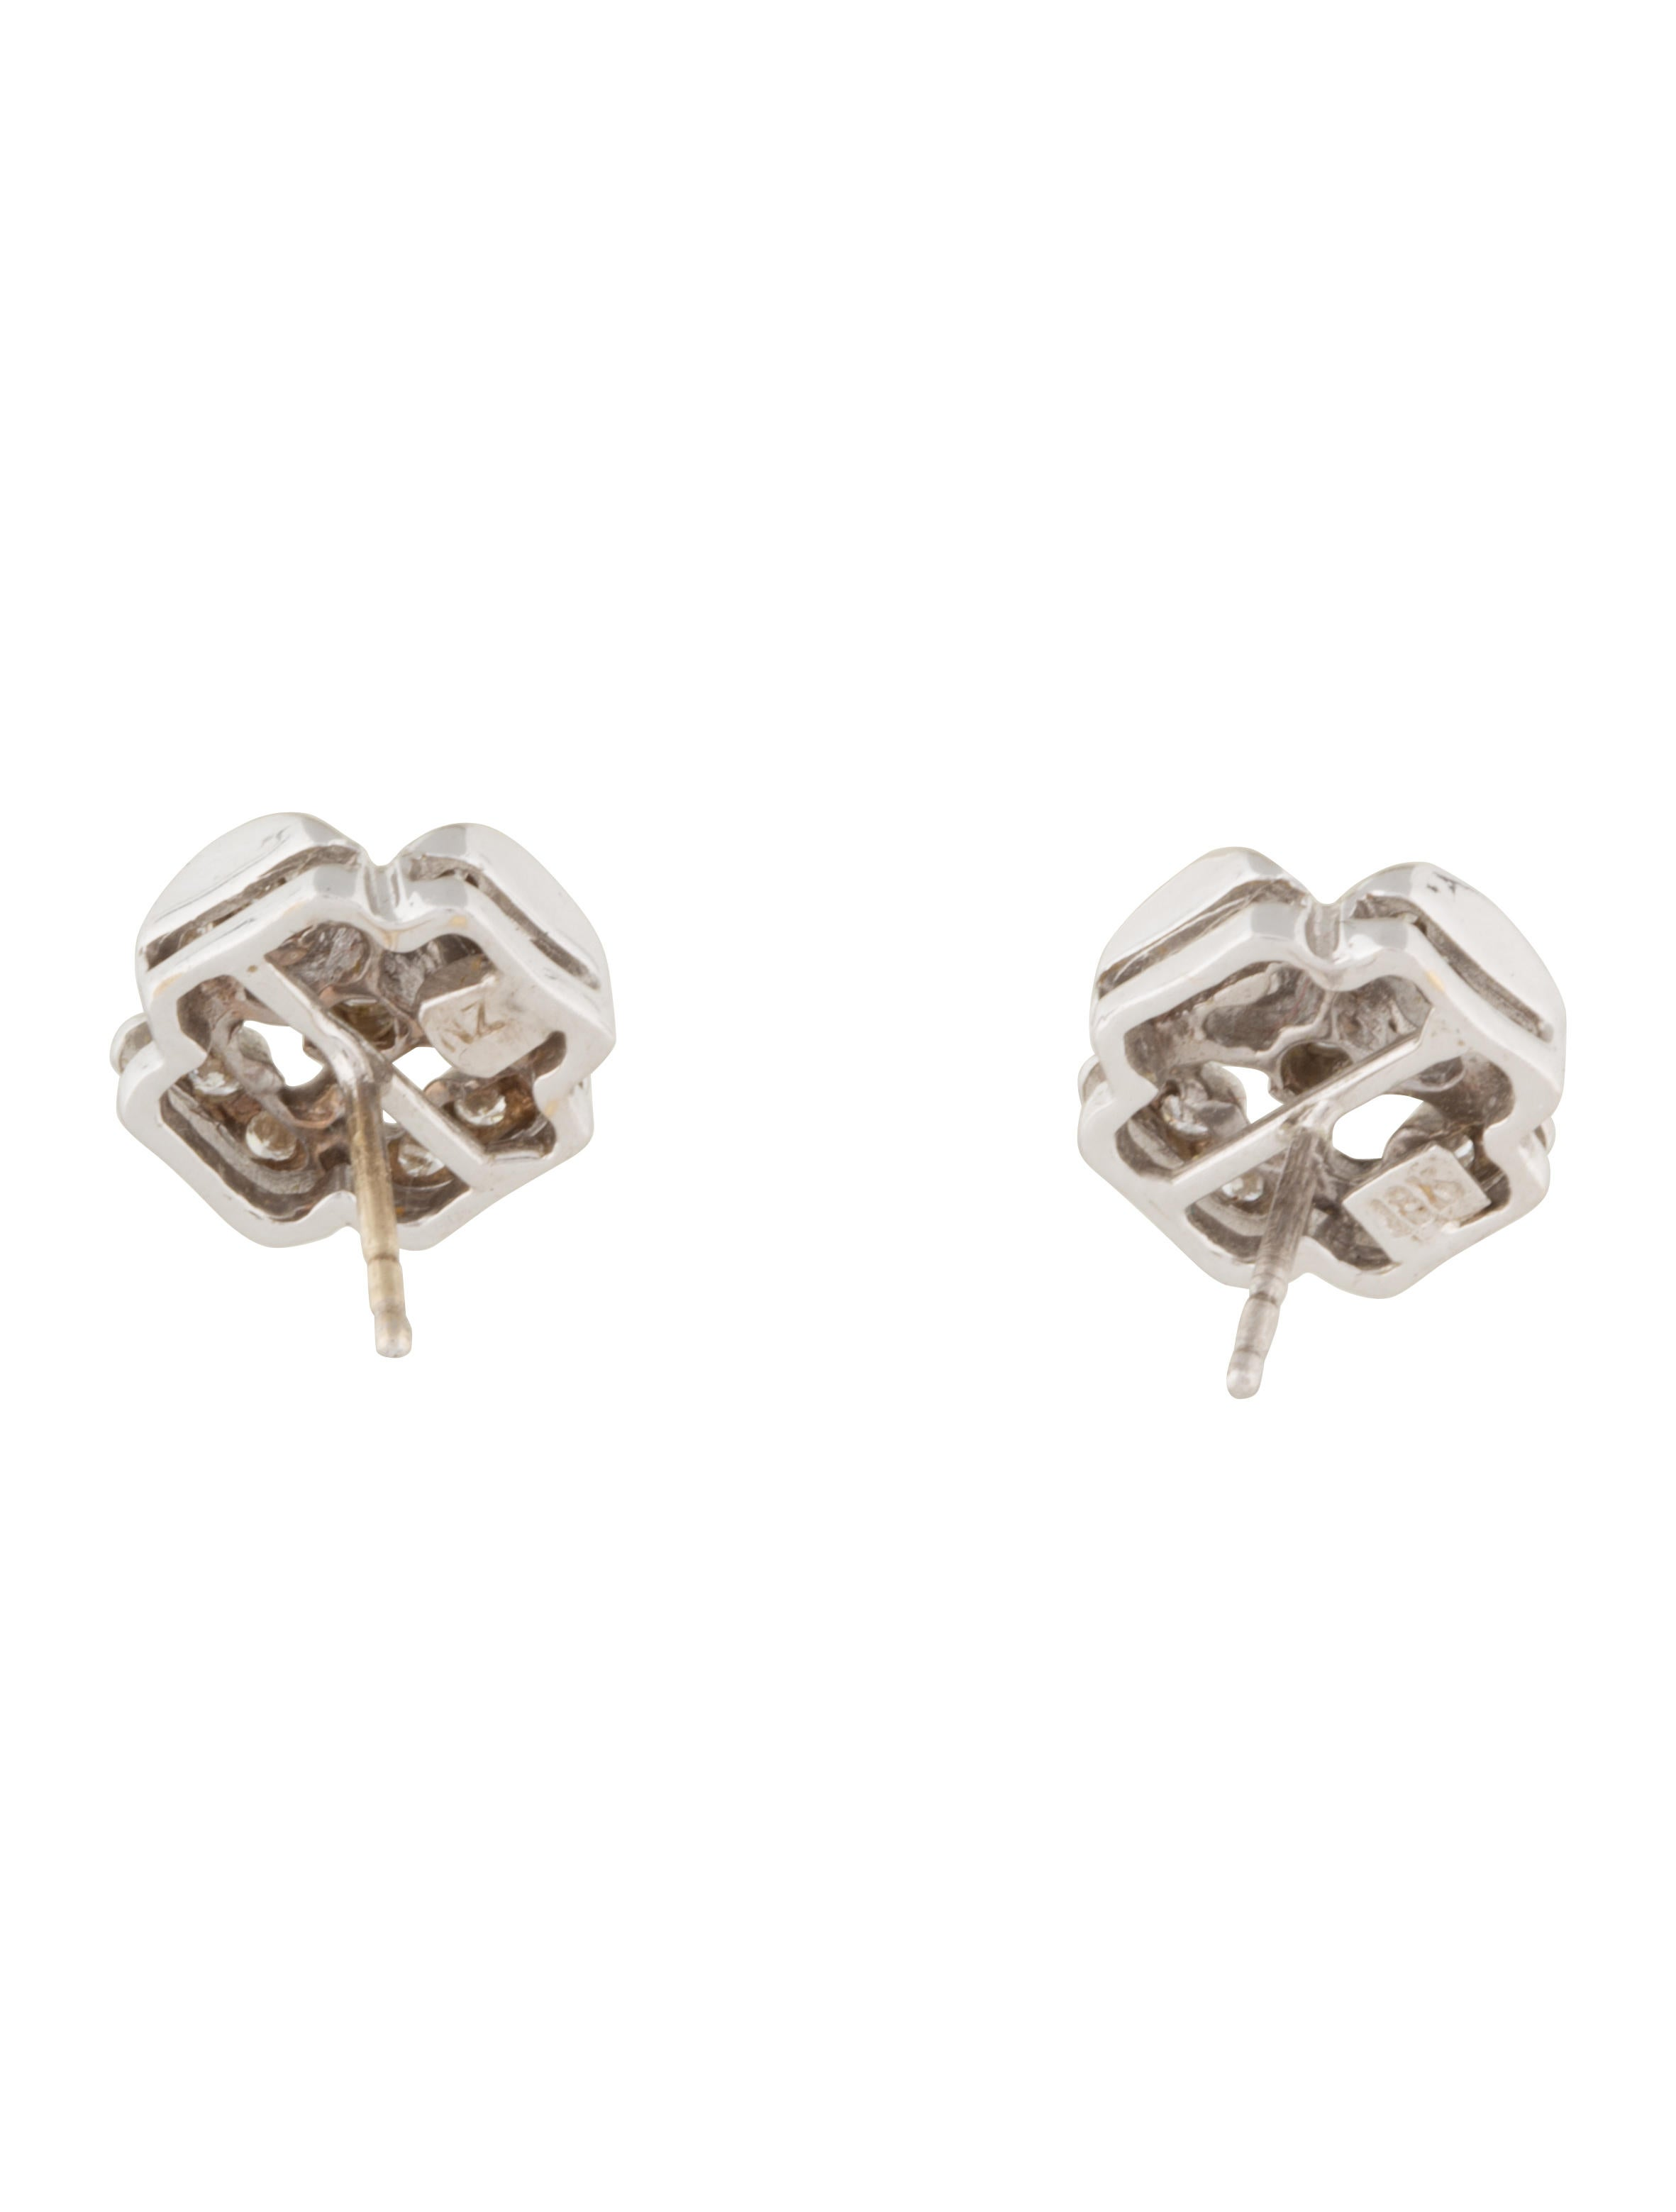 lauren k 18k diamond clover stud earrings earrings